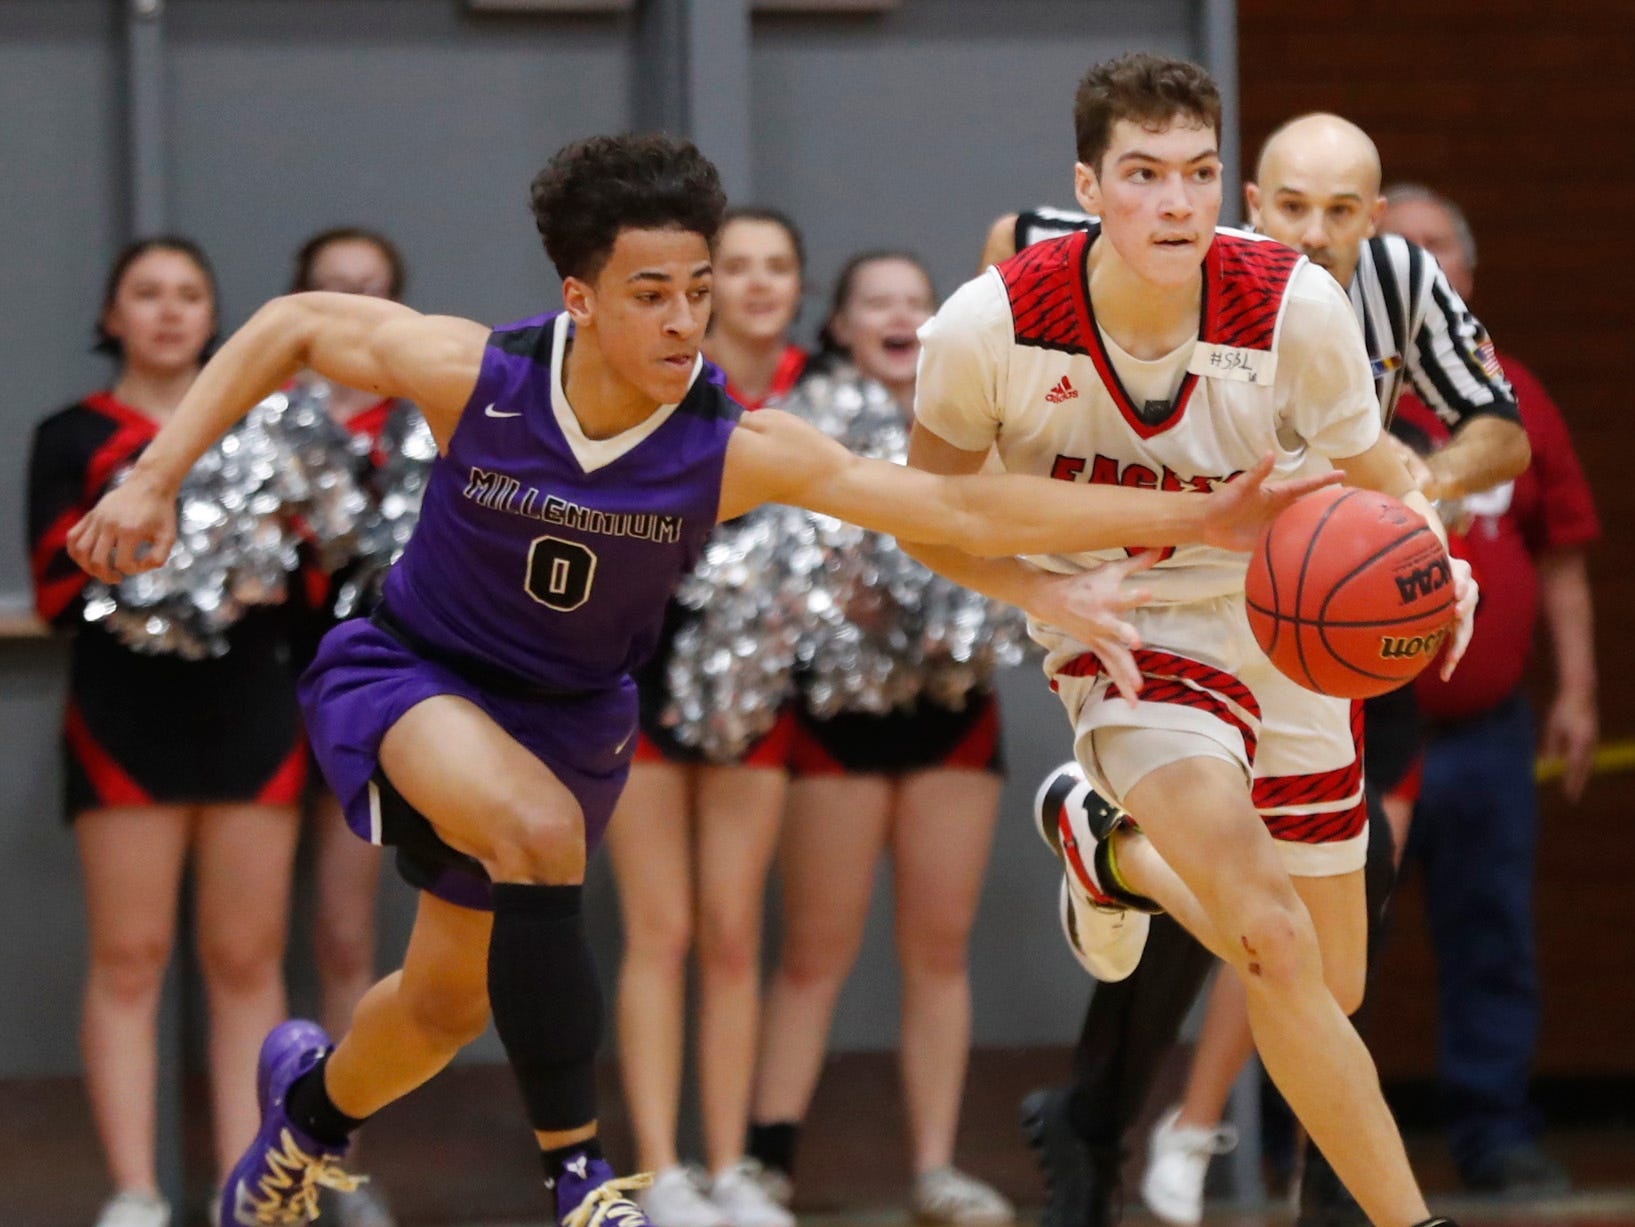 Ironwood's Cassius Carmichael (31) dribbles under pressure from Millennium's Justus Jackson (0) during the first half of the 5A state quarterfinal game at Ironwood High School in Glendale, Ariz. on February 15, 2019.